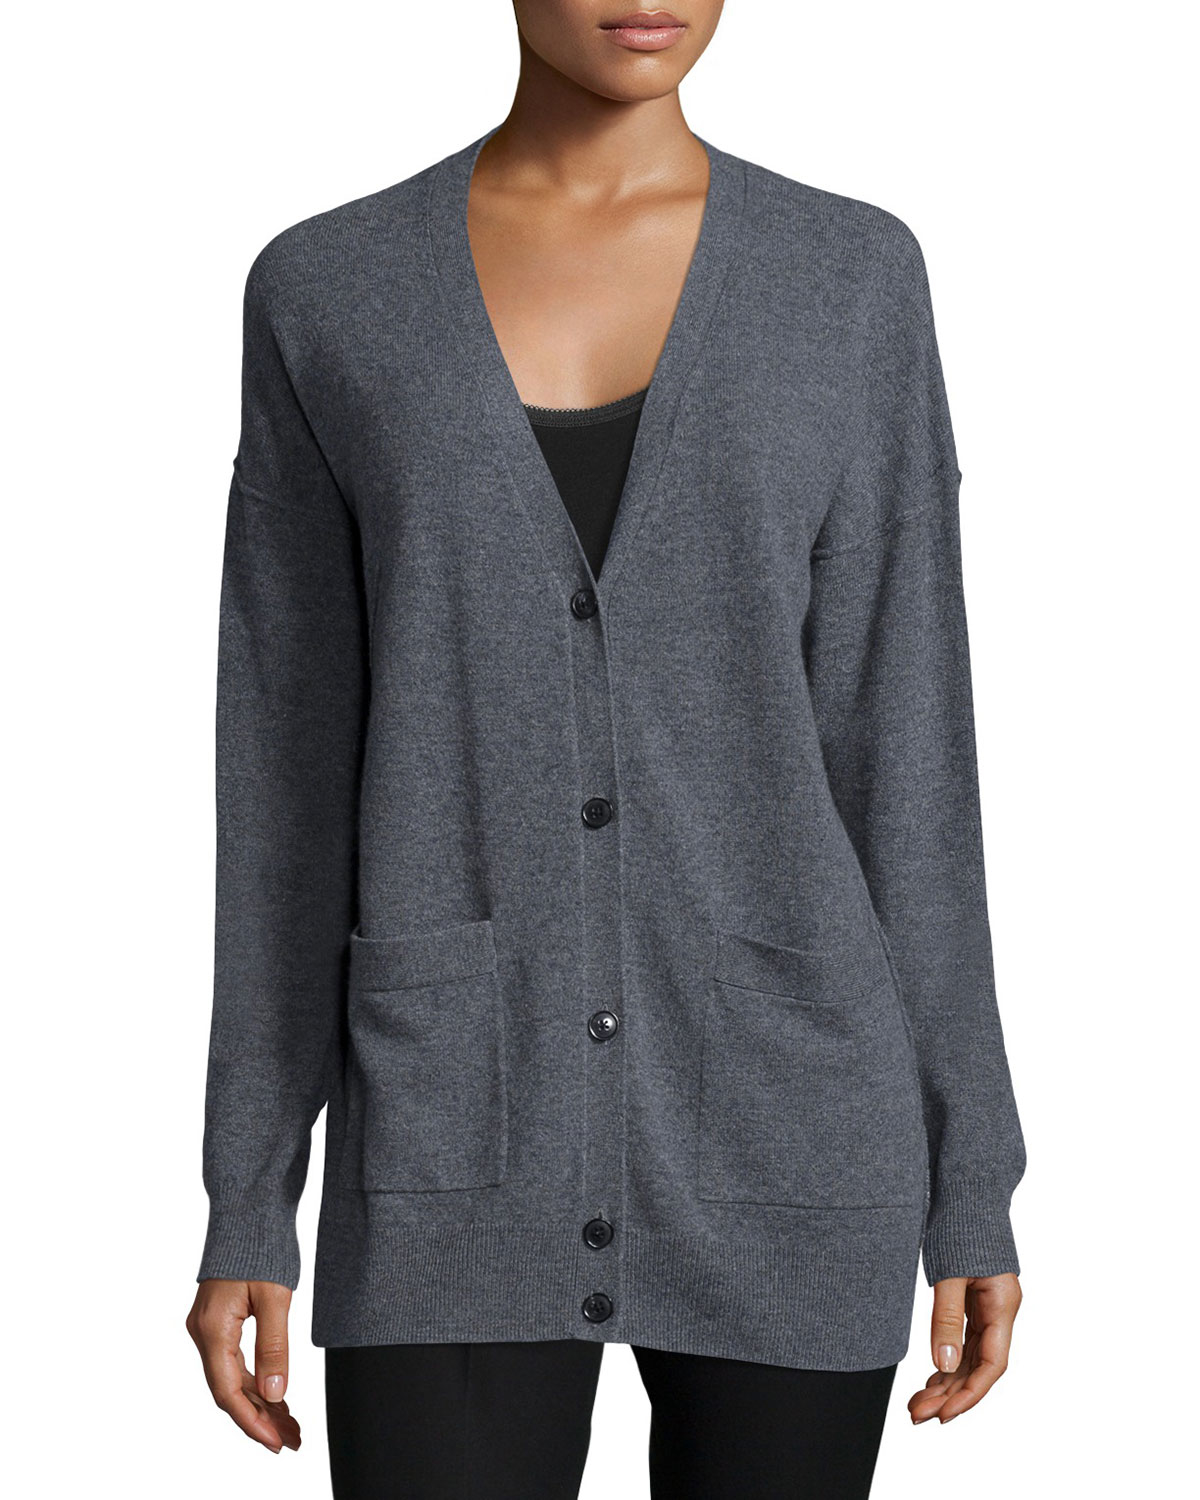 Joseph Soft Wool V-neck Cardigan in Gray | Lyst